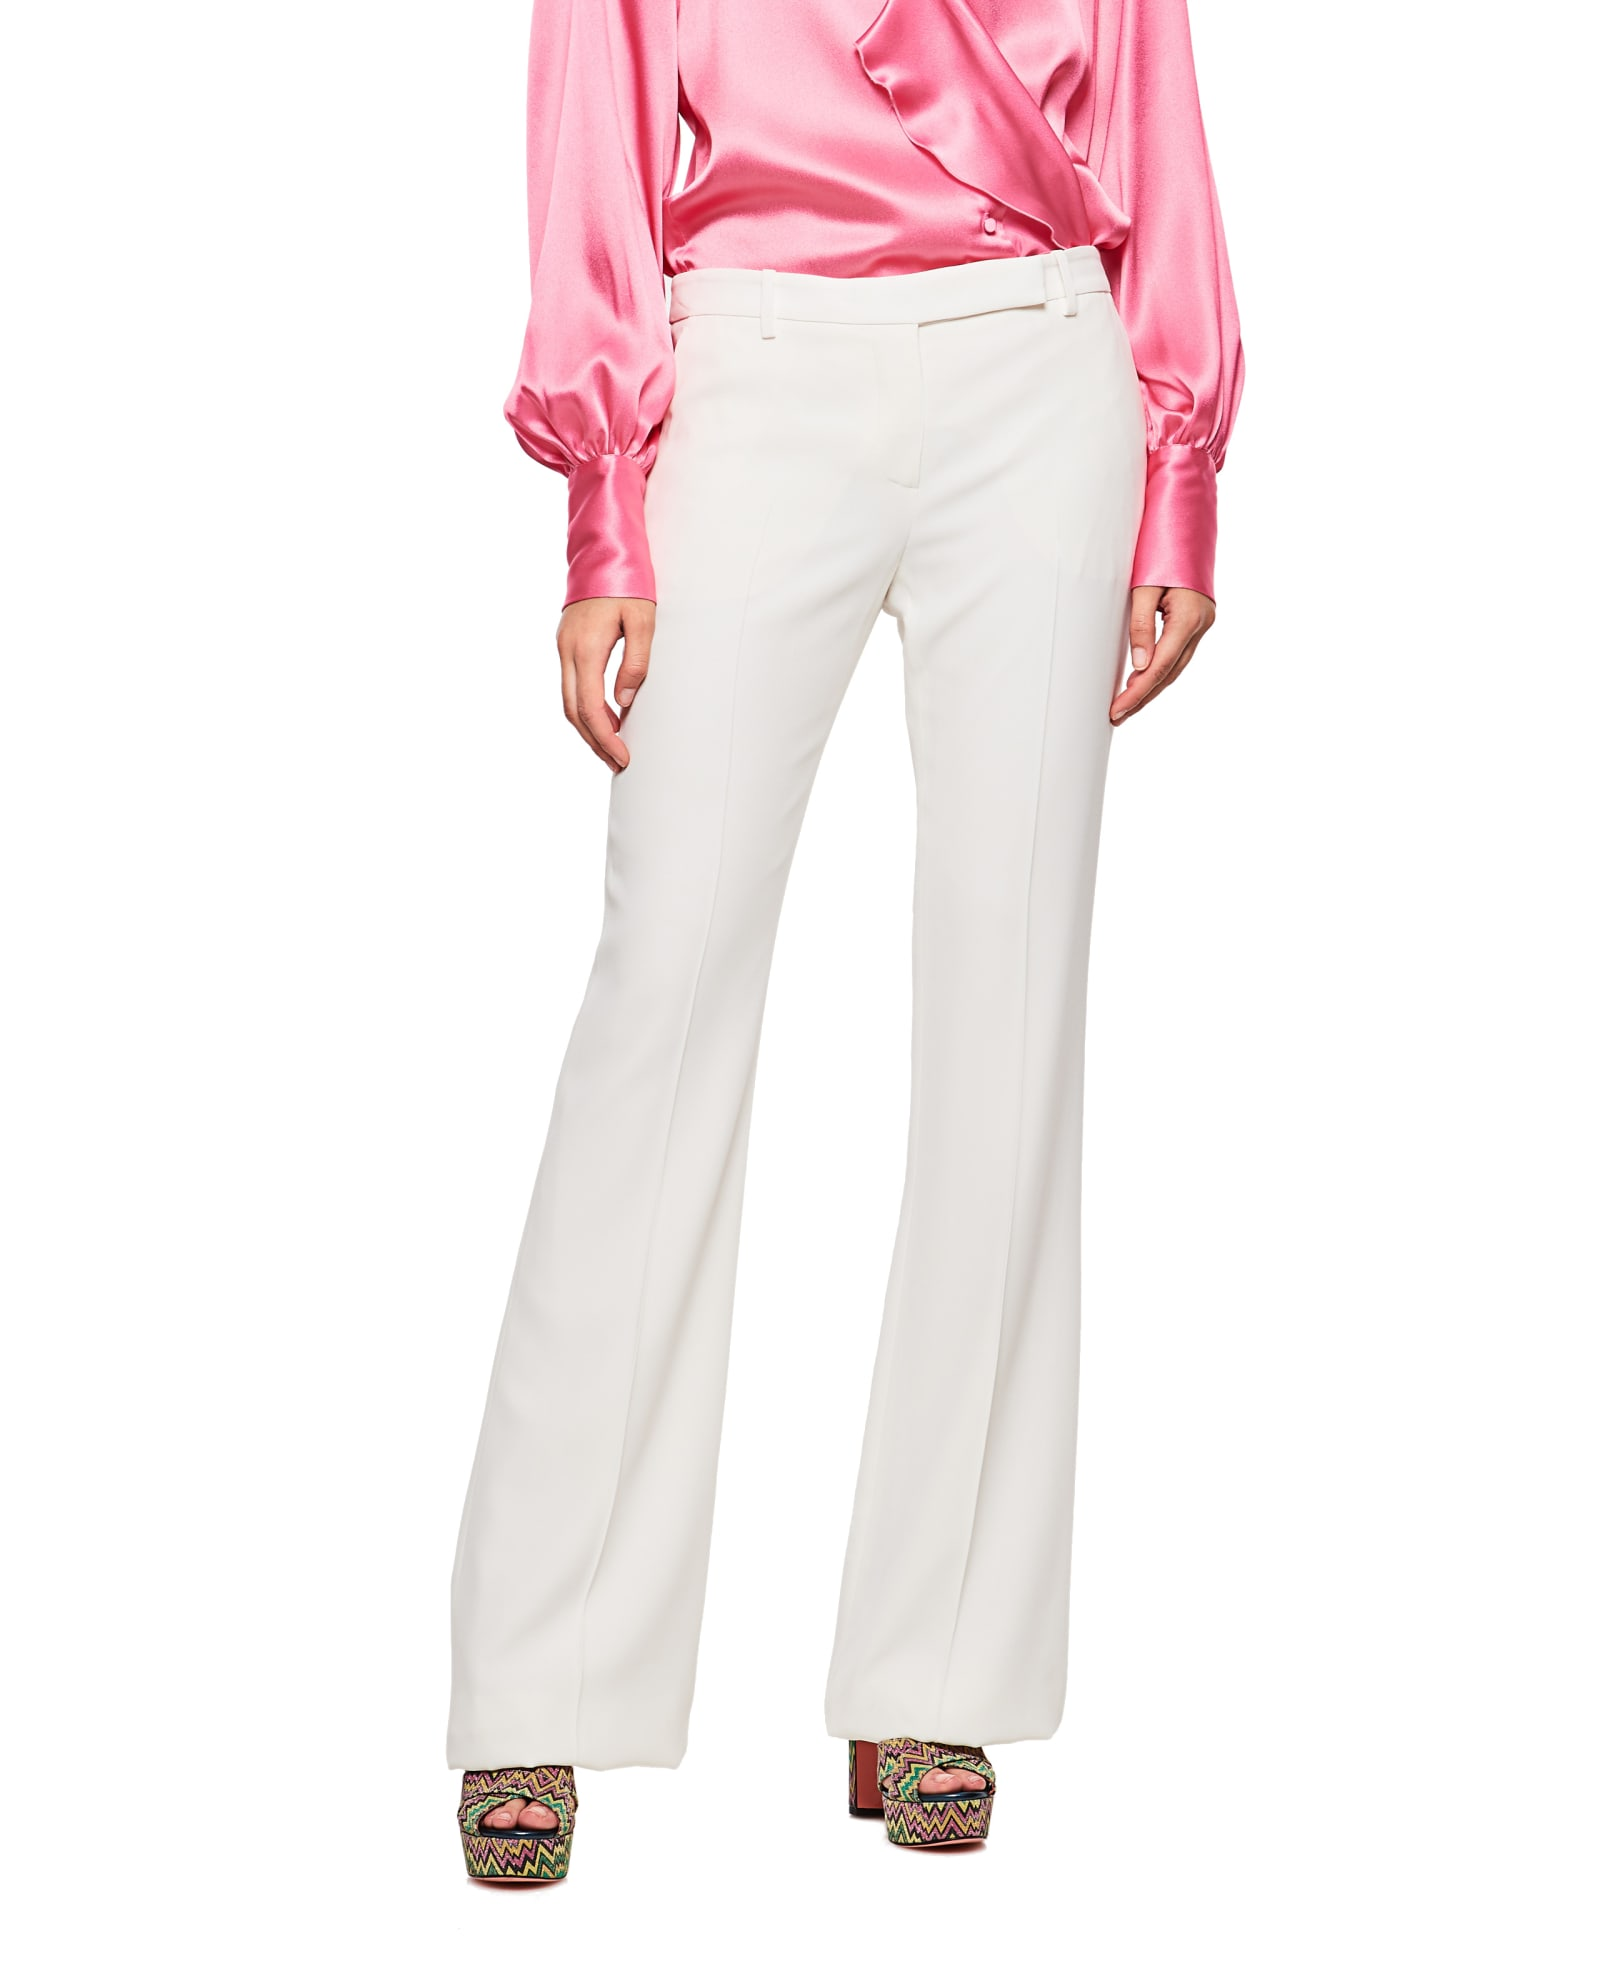 Alexander Mcqueen Pants MID -RISE FLARED PANTS